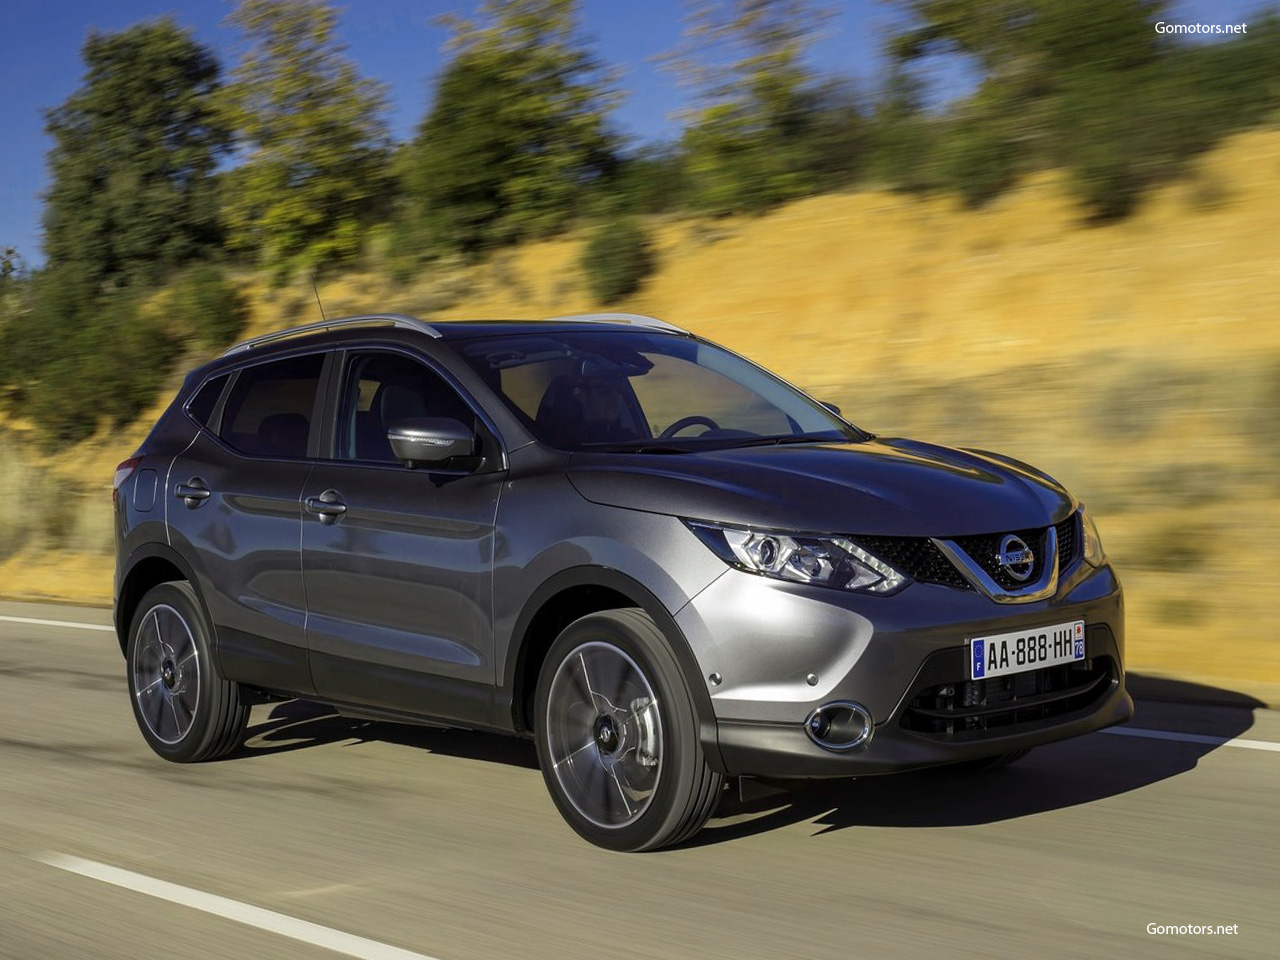 nissan qashqai 2014 photos news reviews specs car listings. Black Bedroom Furniture Sets. Home Design Ideas